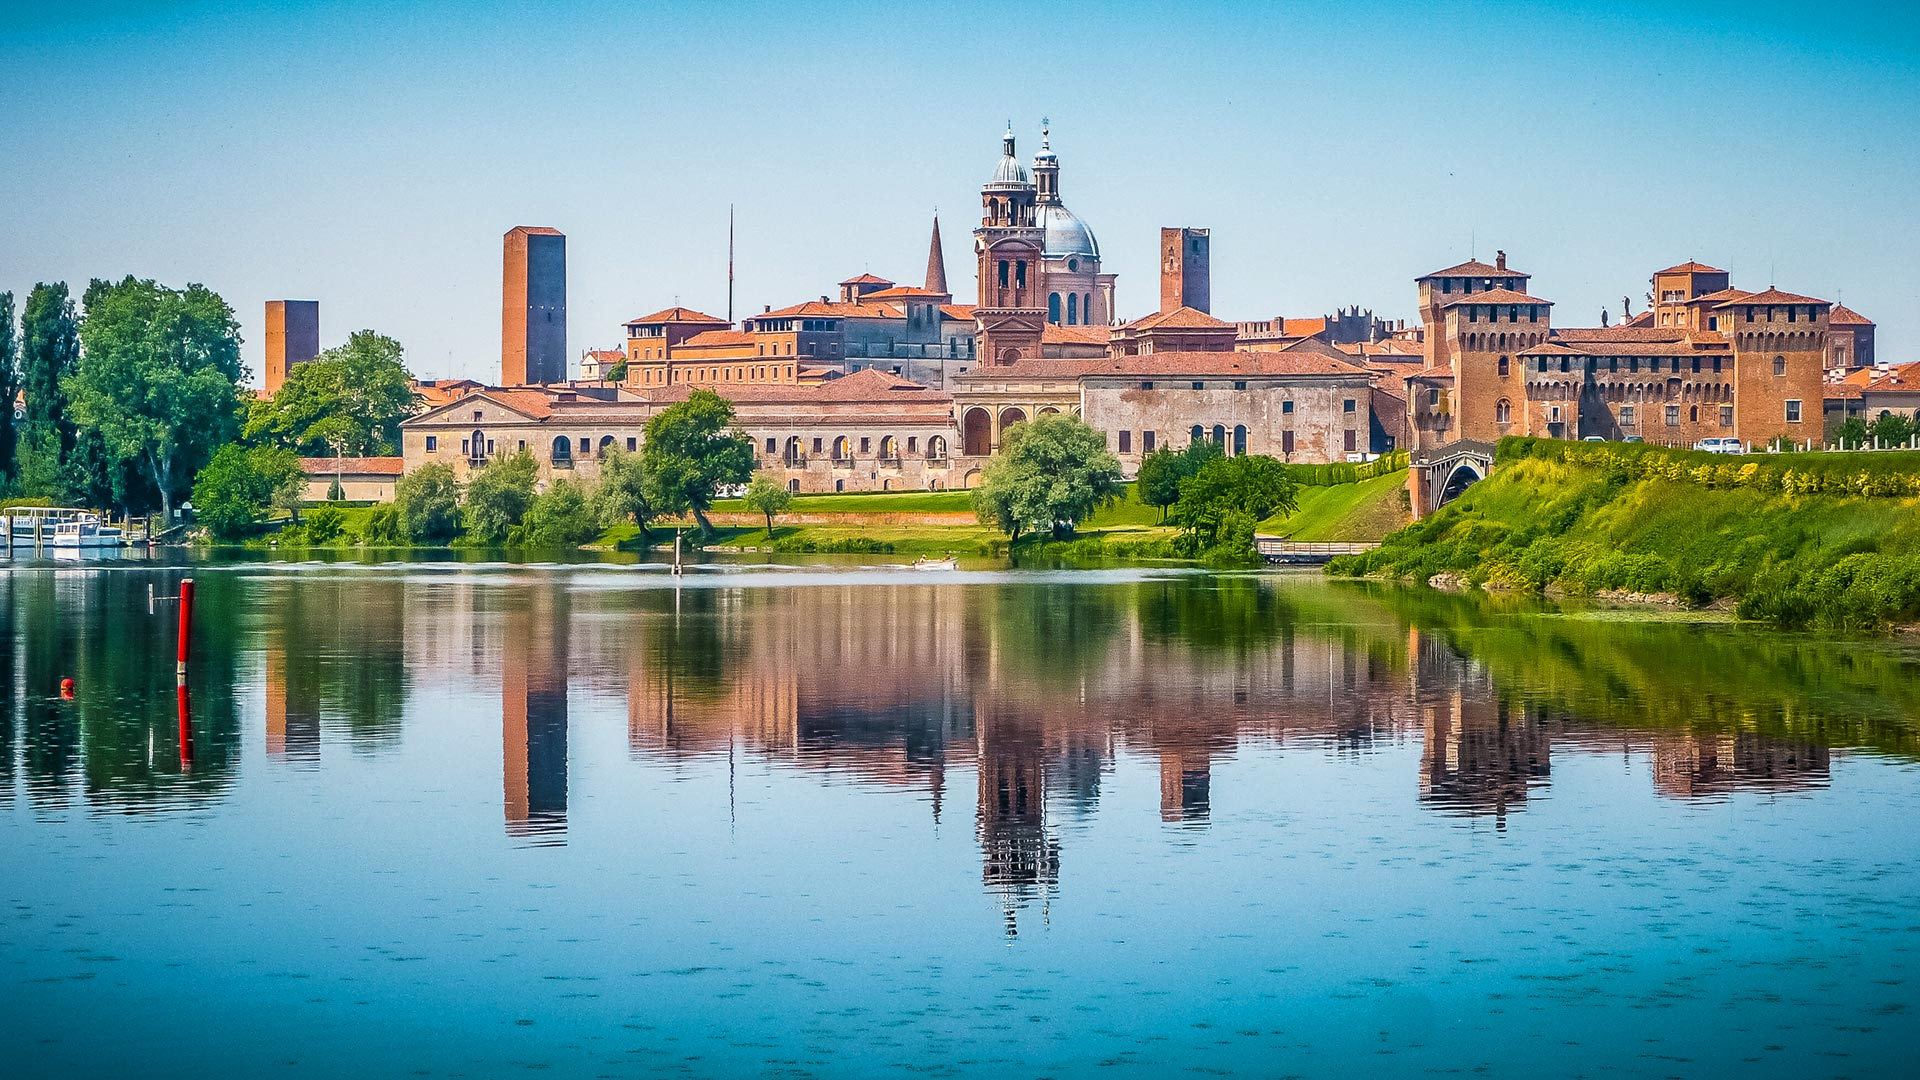 visit mantua: the old town, palazzo te and sabbioneta | alitalia